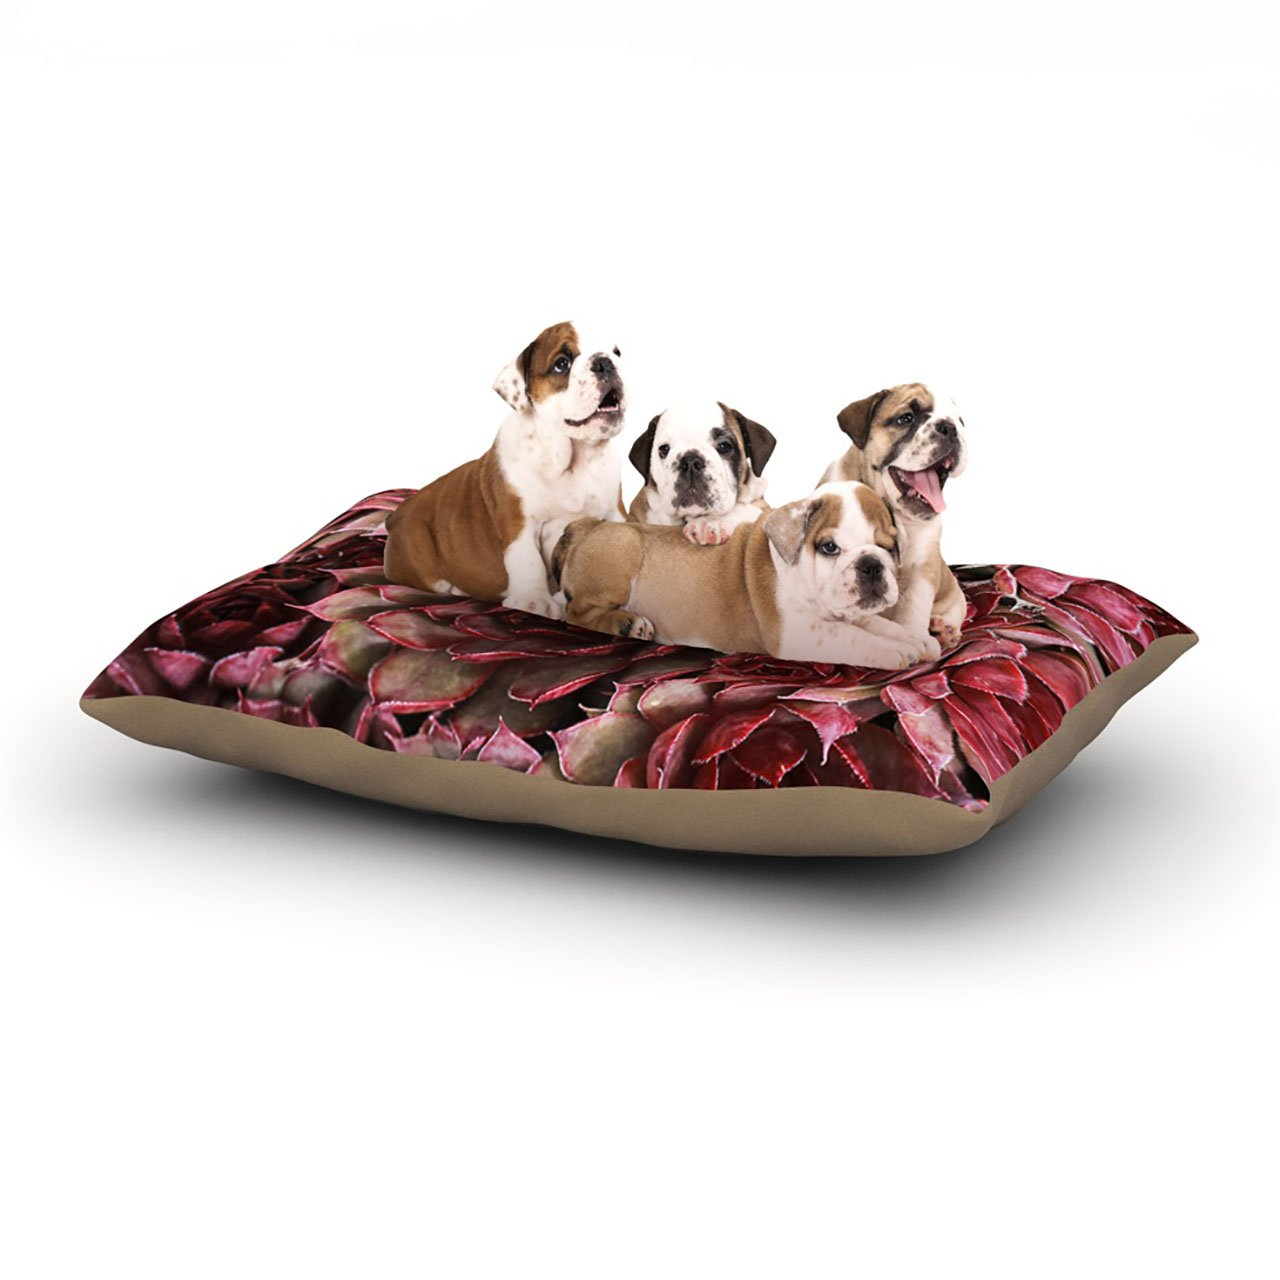 Large 30\ Kess InHouse Debbra Obertanec Red Succulents  Fleece Dog Bed, 30 by 40-Inch, Maroon